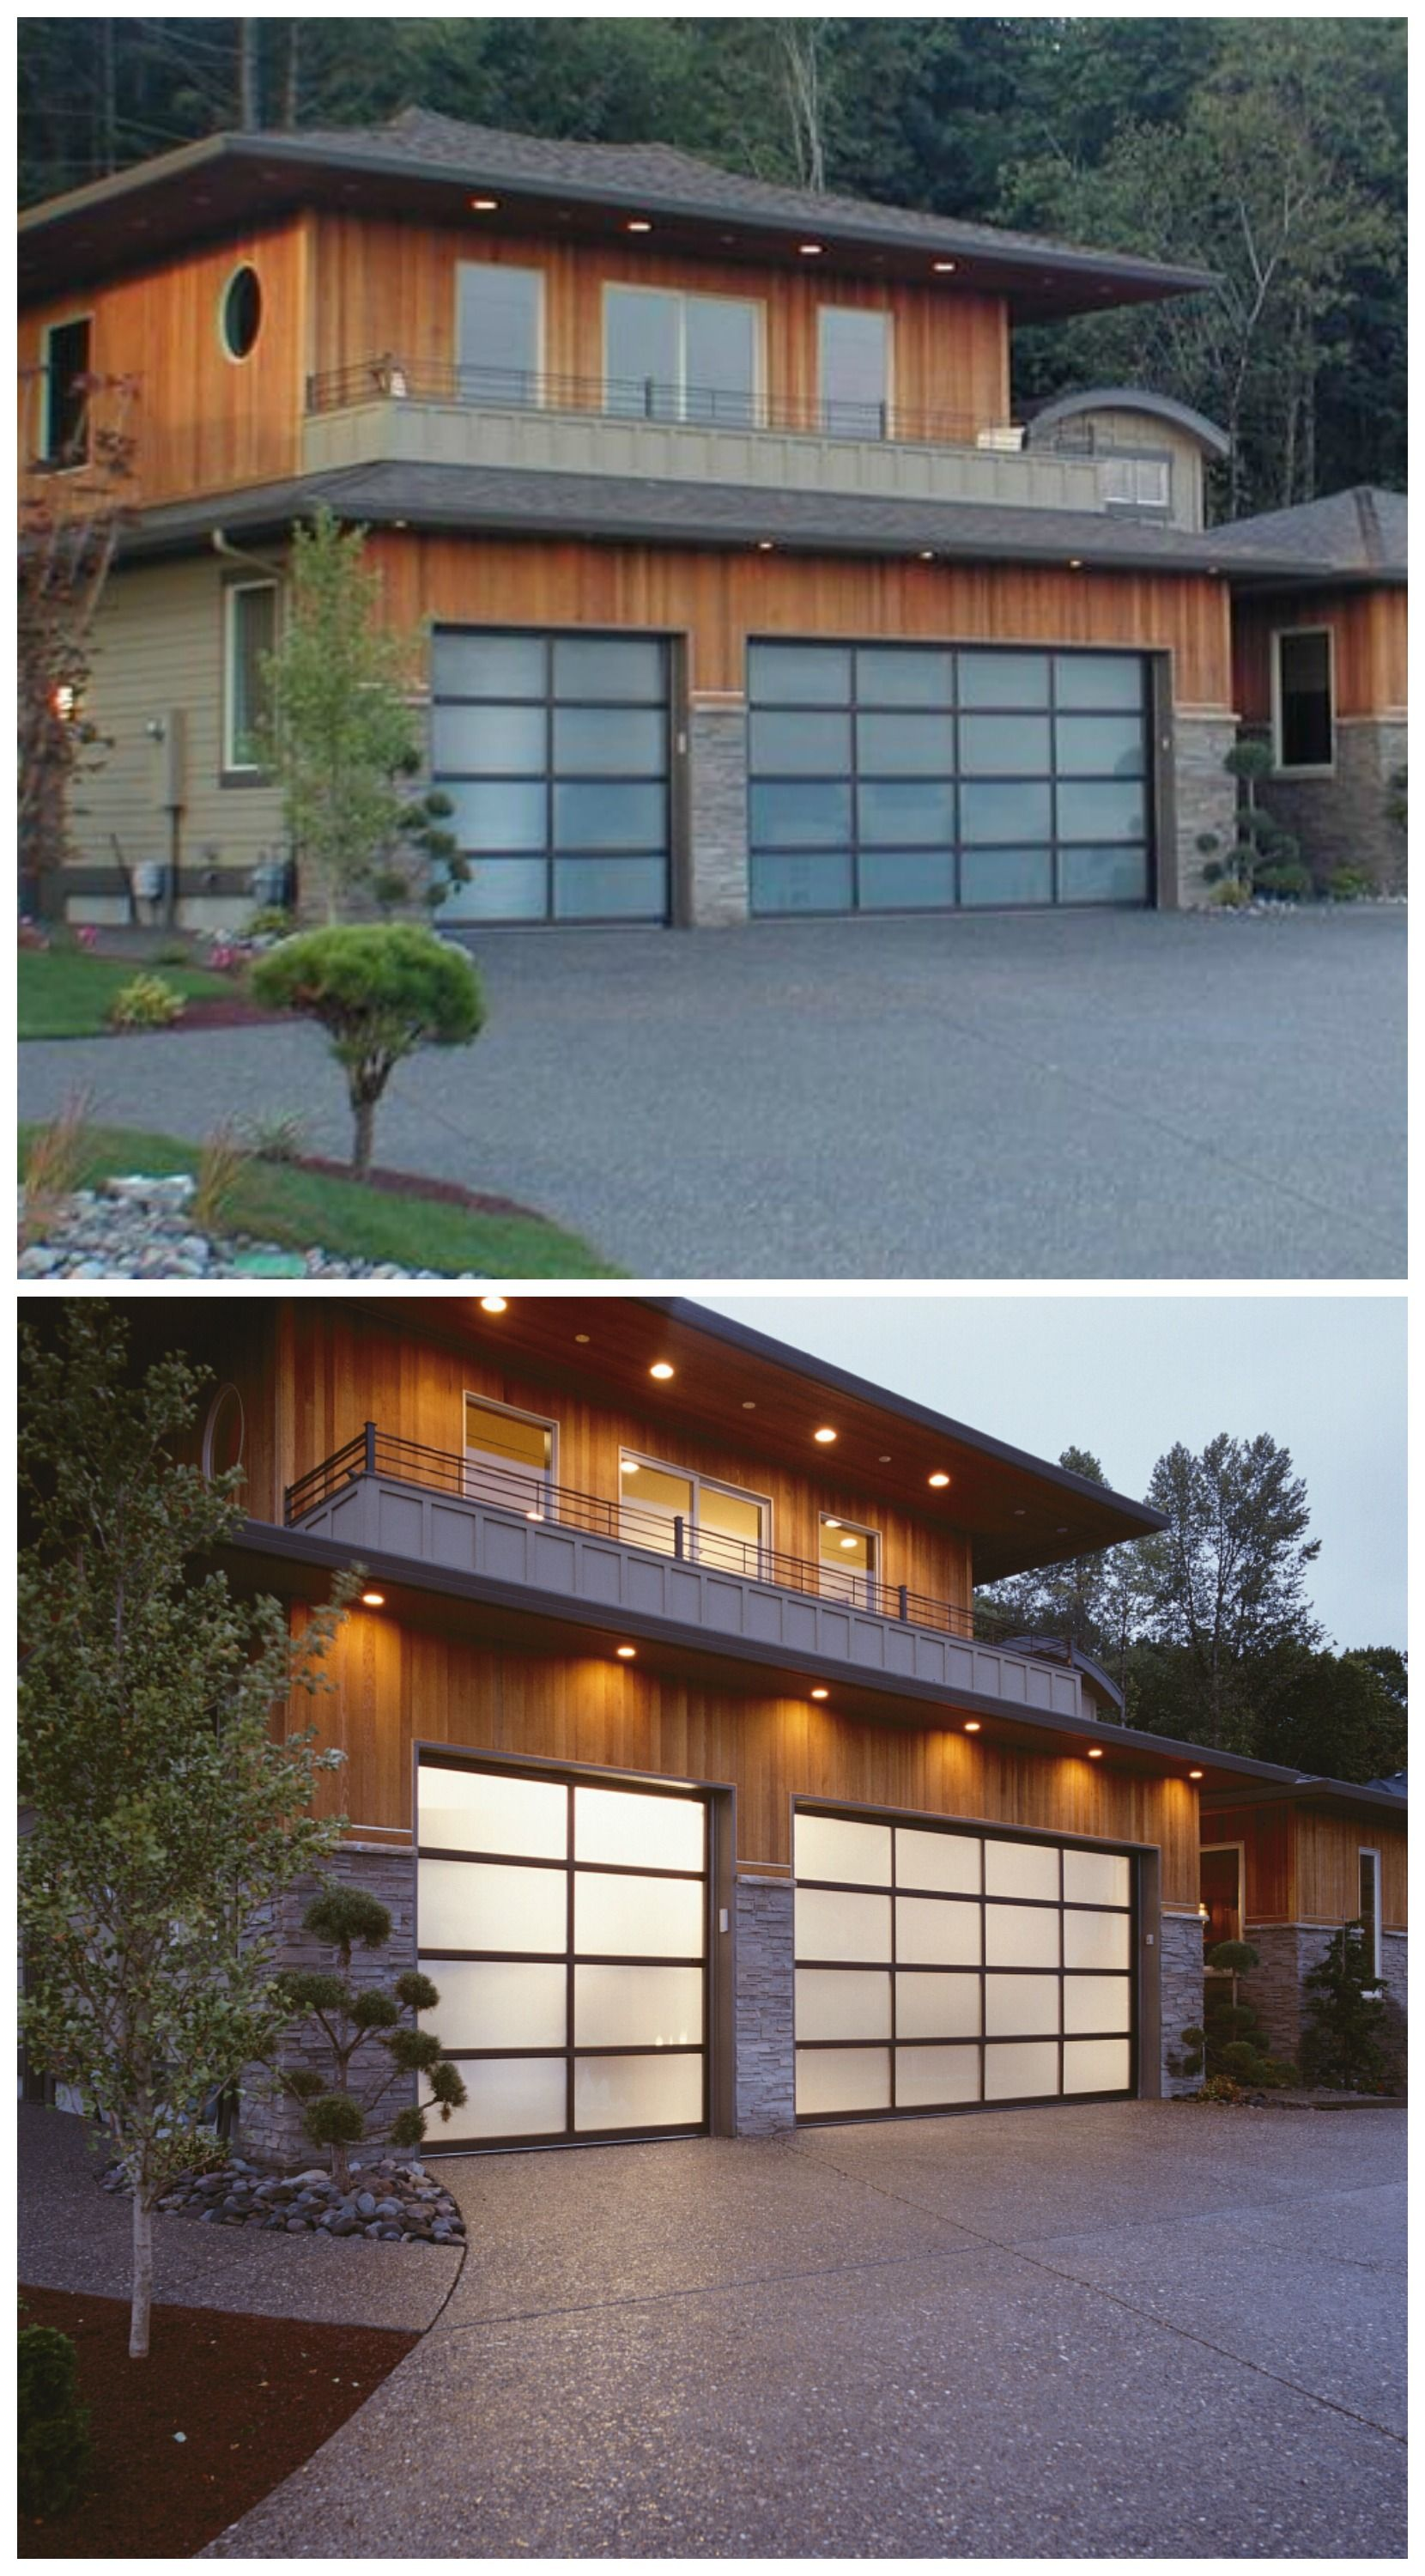 Clopay Avante Collection Glass Garage Doors Are A